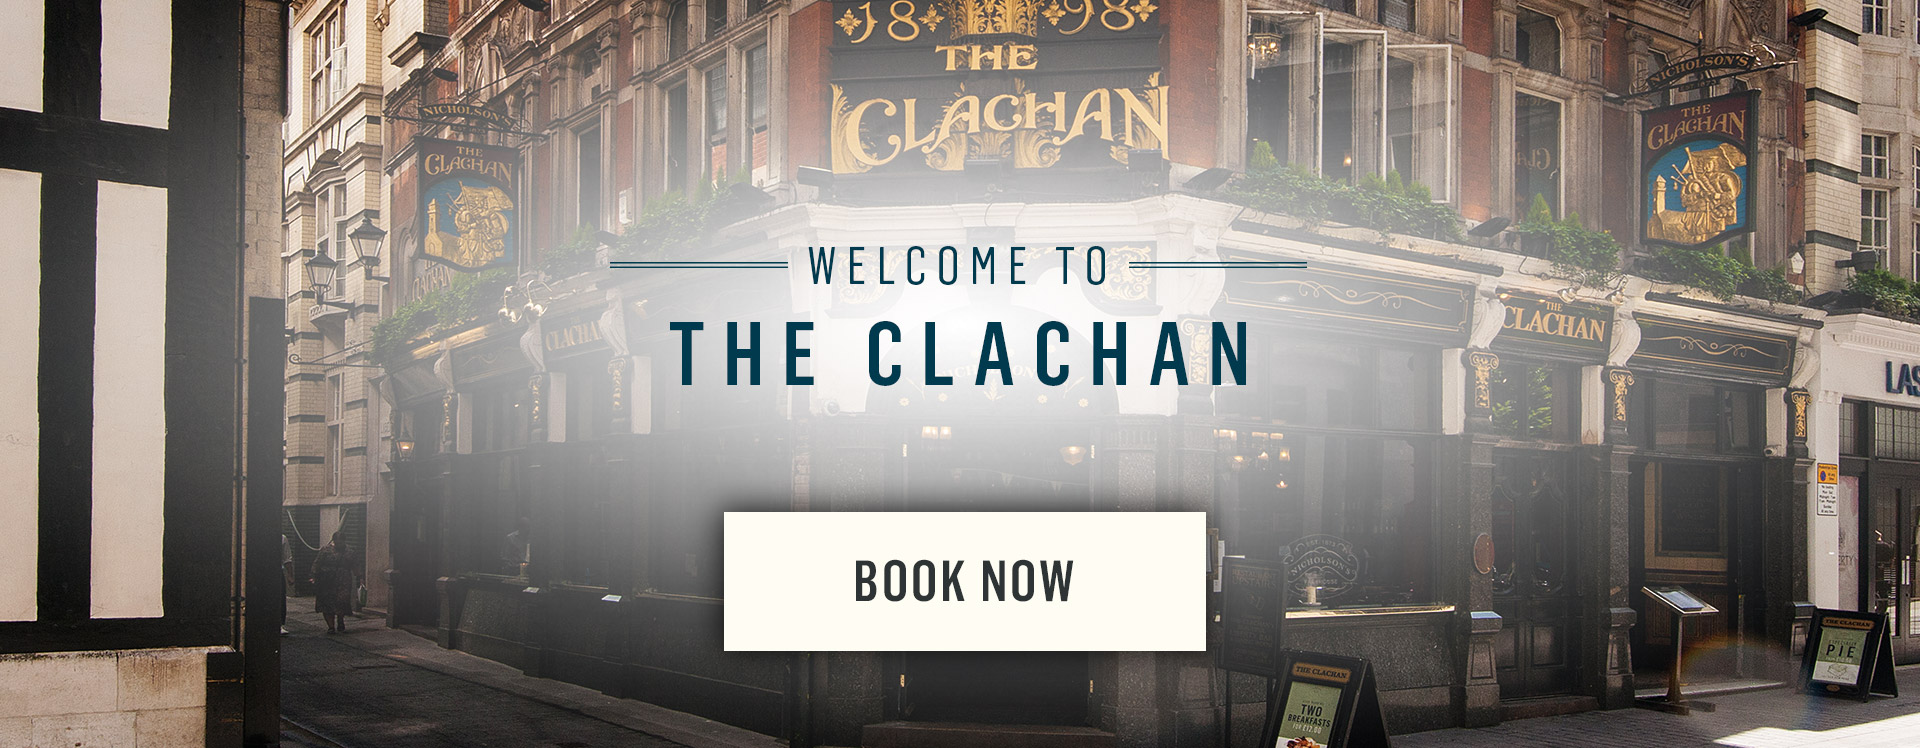 Welcome to The Clachan - Book Now